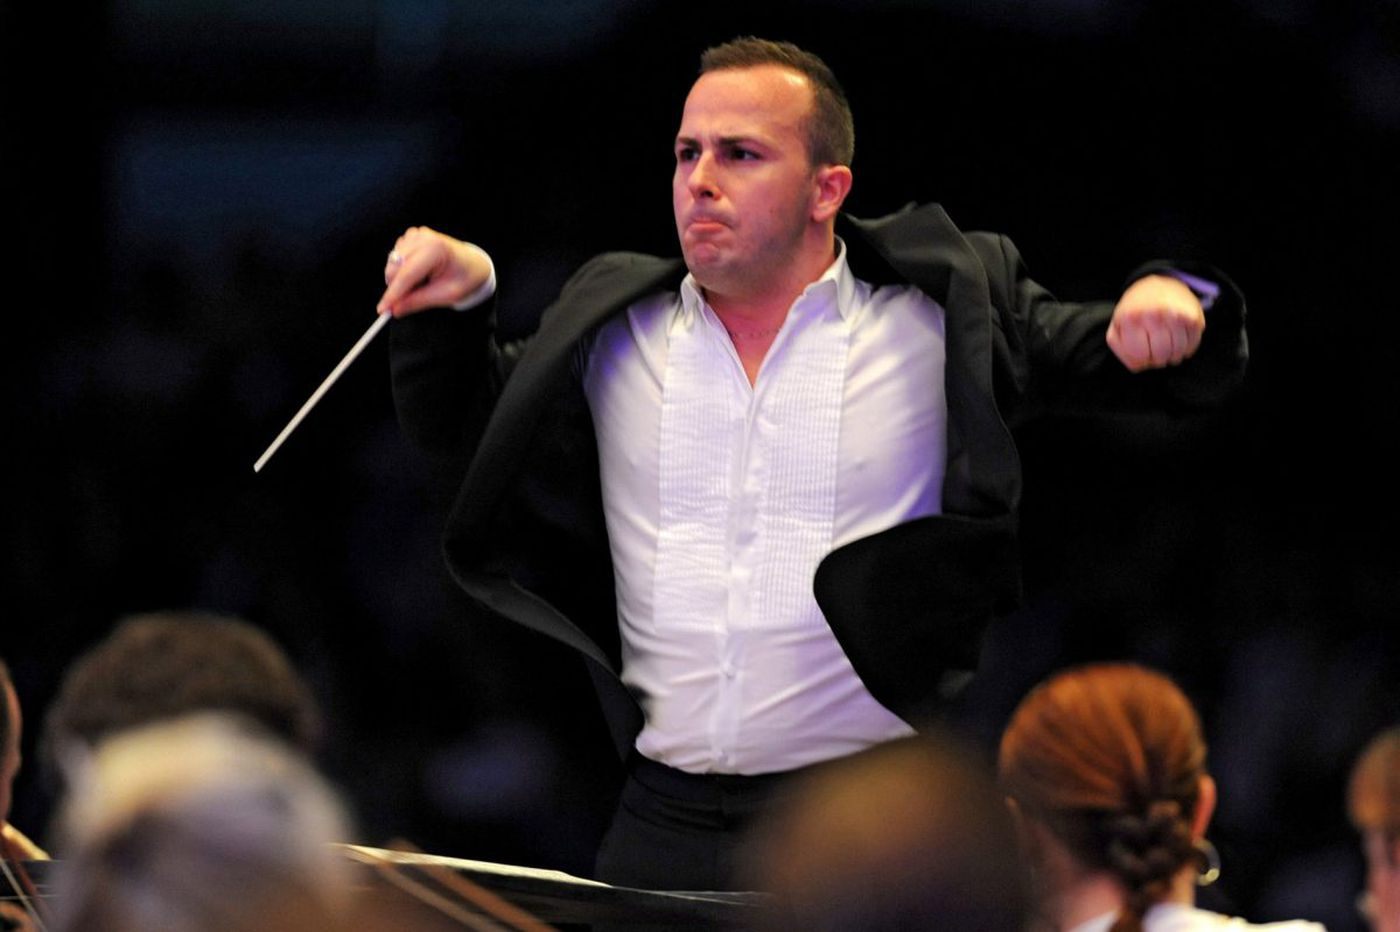 Philadelphia Orchestra gets down to business (at last)